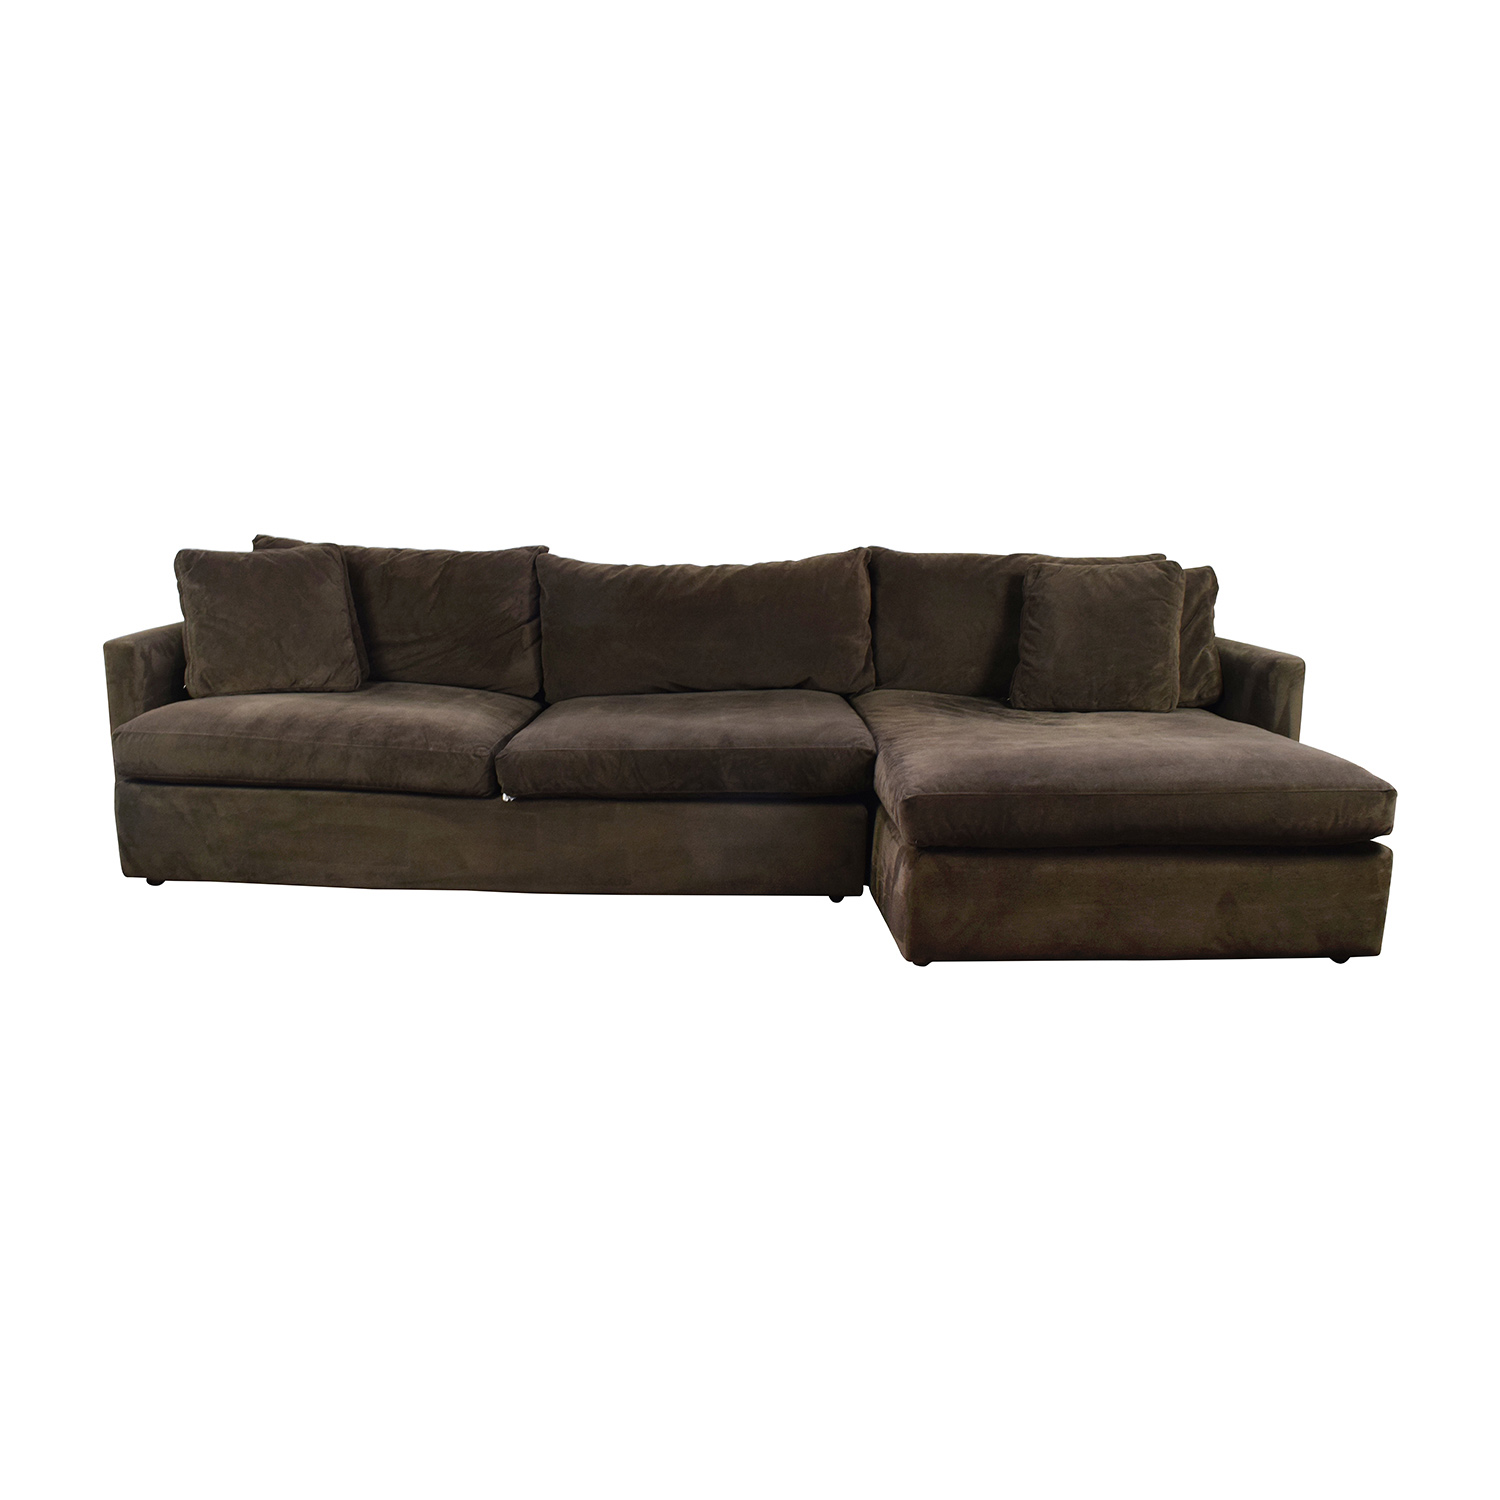 buy Crate and Barrel Crate & Barrel Brown Left Arm Sectional online